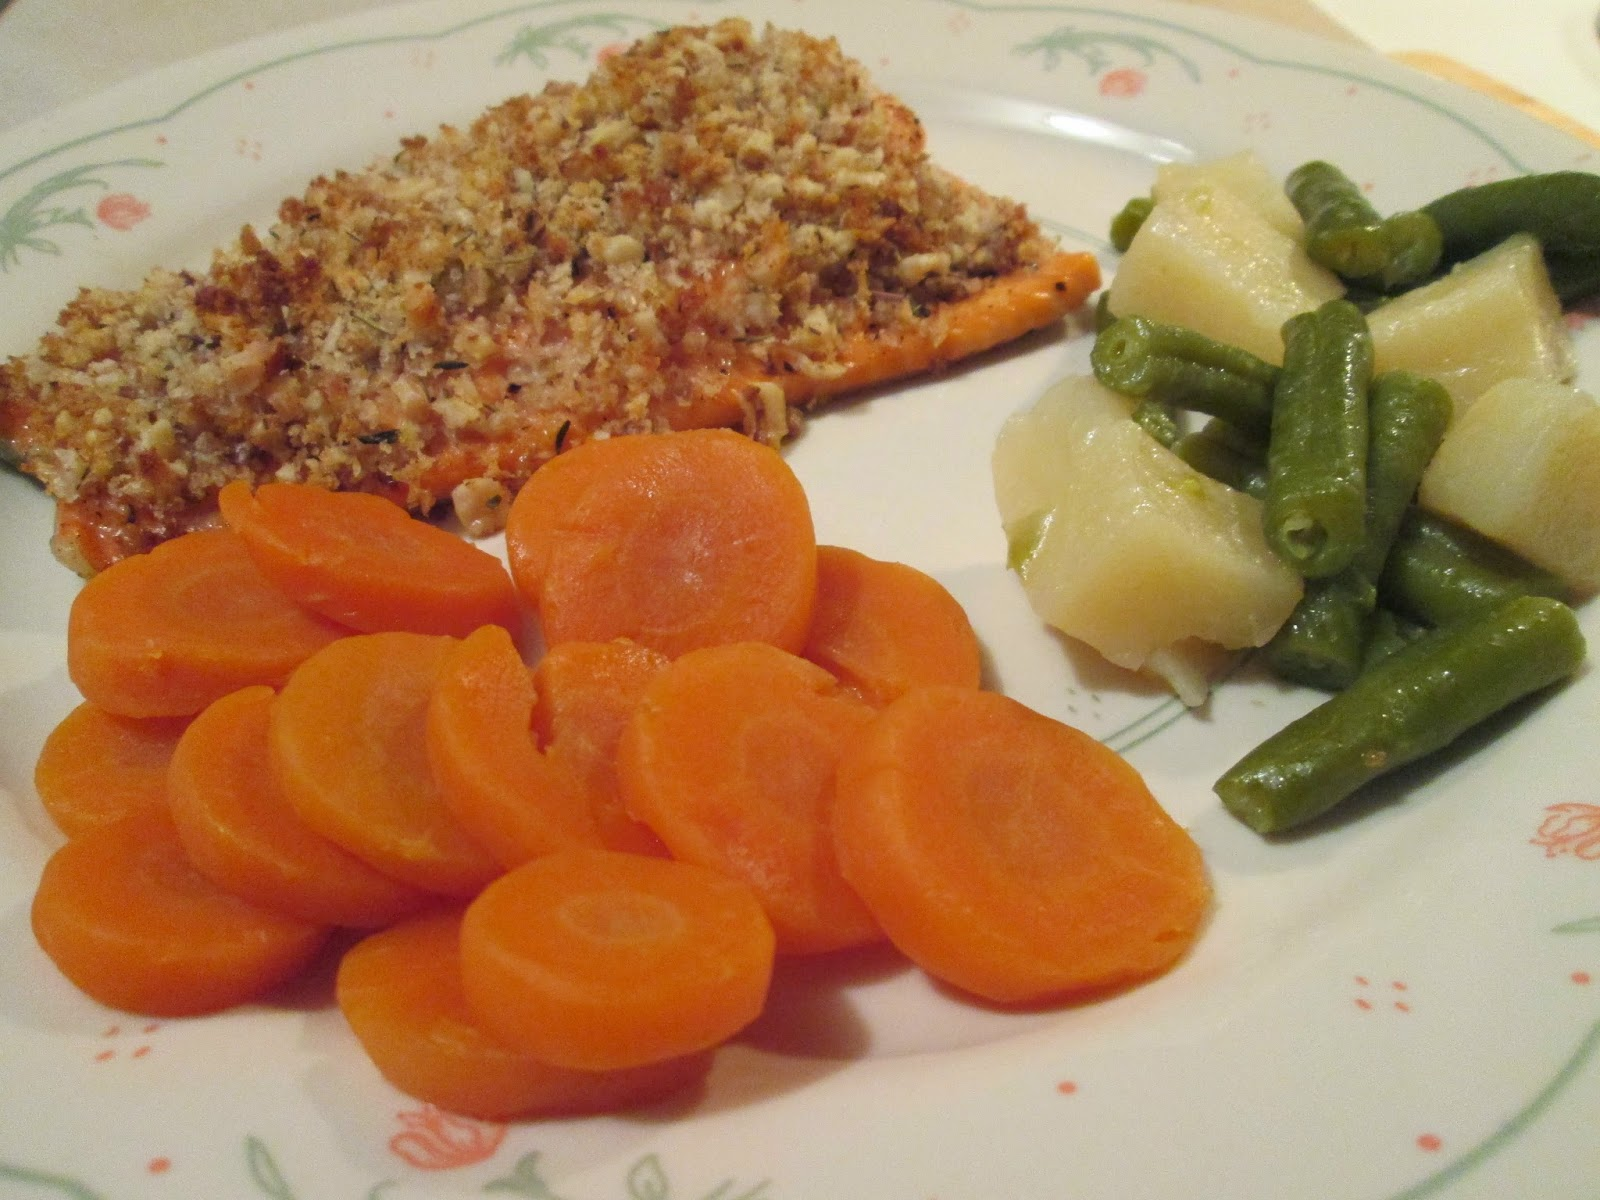 walnut-crusted salmon w/ baked potato and green beans & potatoes